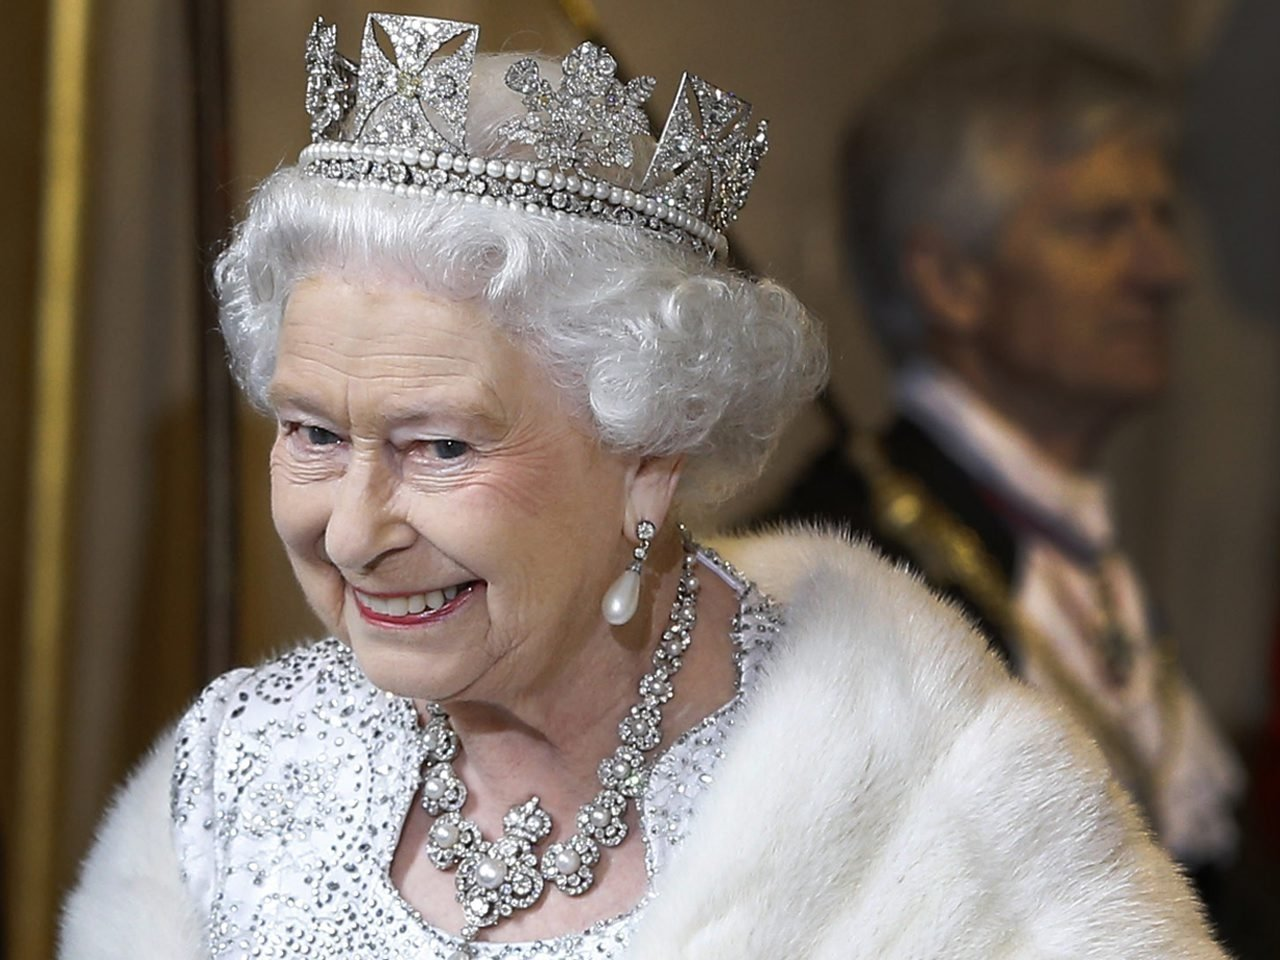 Queen Elizabeth II smiles as she leaves the State Opening of Parliament at the House of Lords on May 8, 2013 in London, England. (Getty Images)